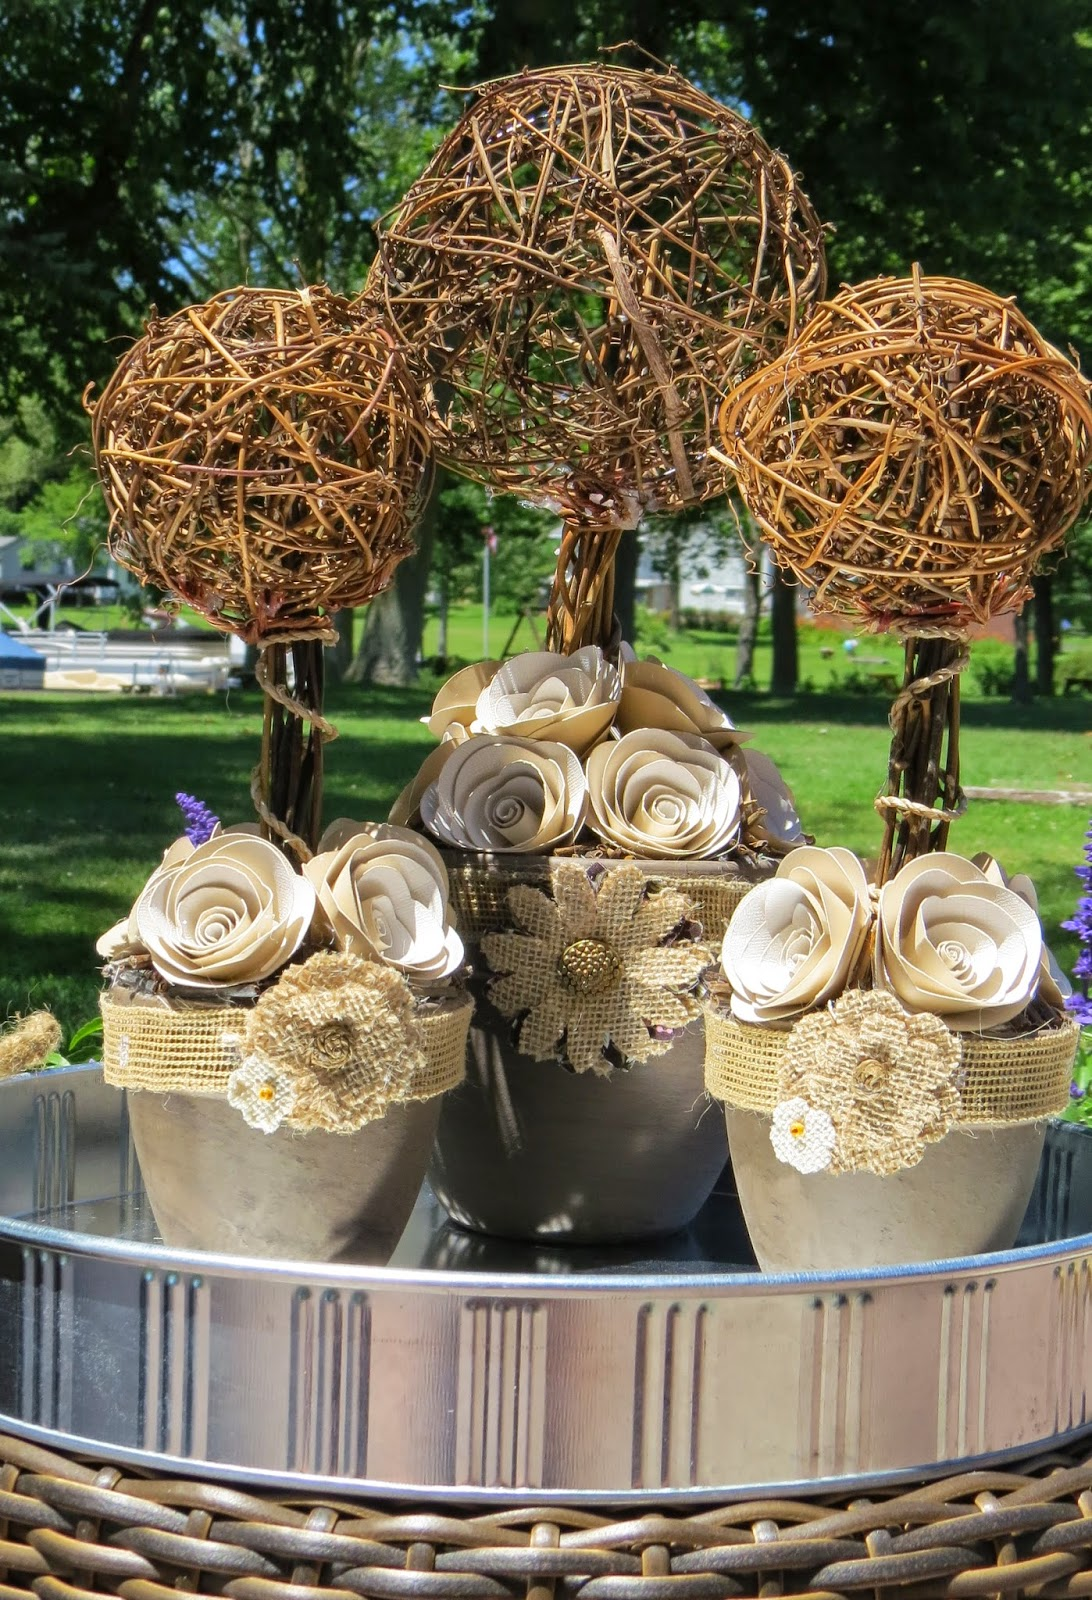 Three Topiary, Wood, Paper Roses, Burlap, Twigs, Tray, Handmade